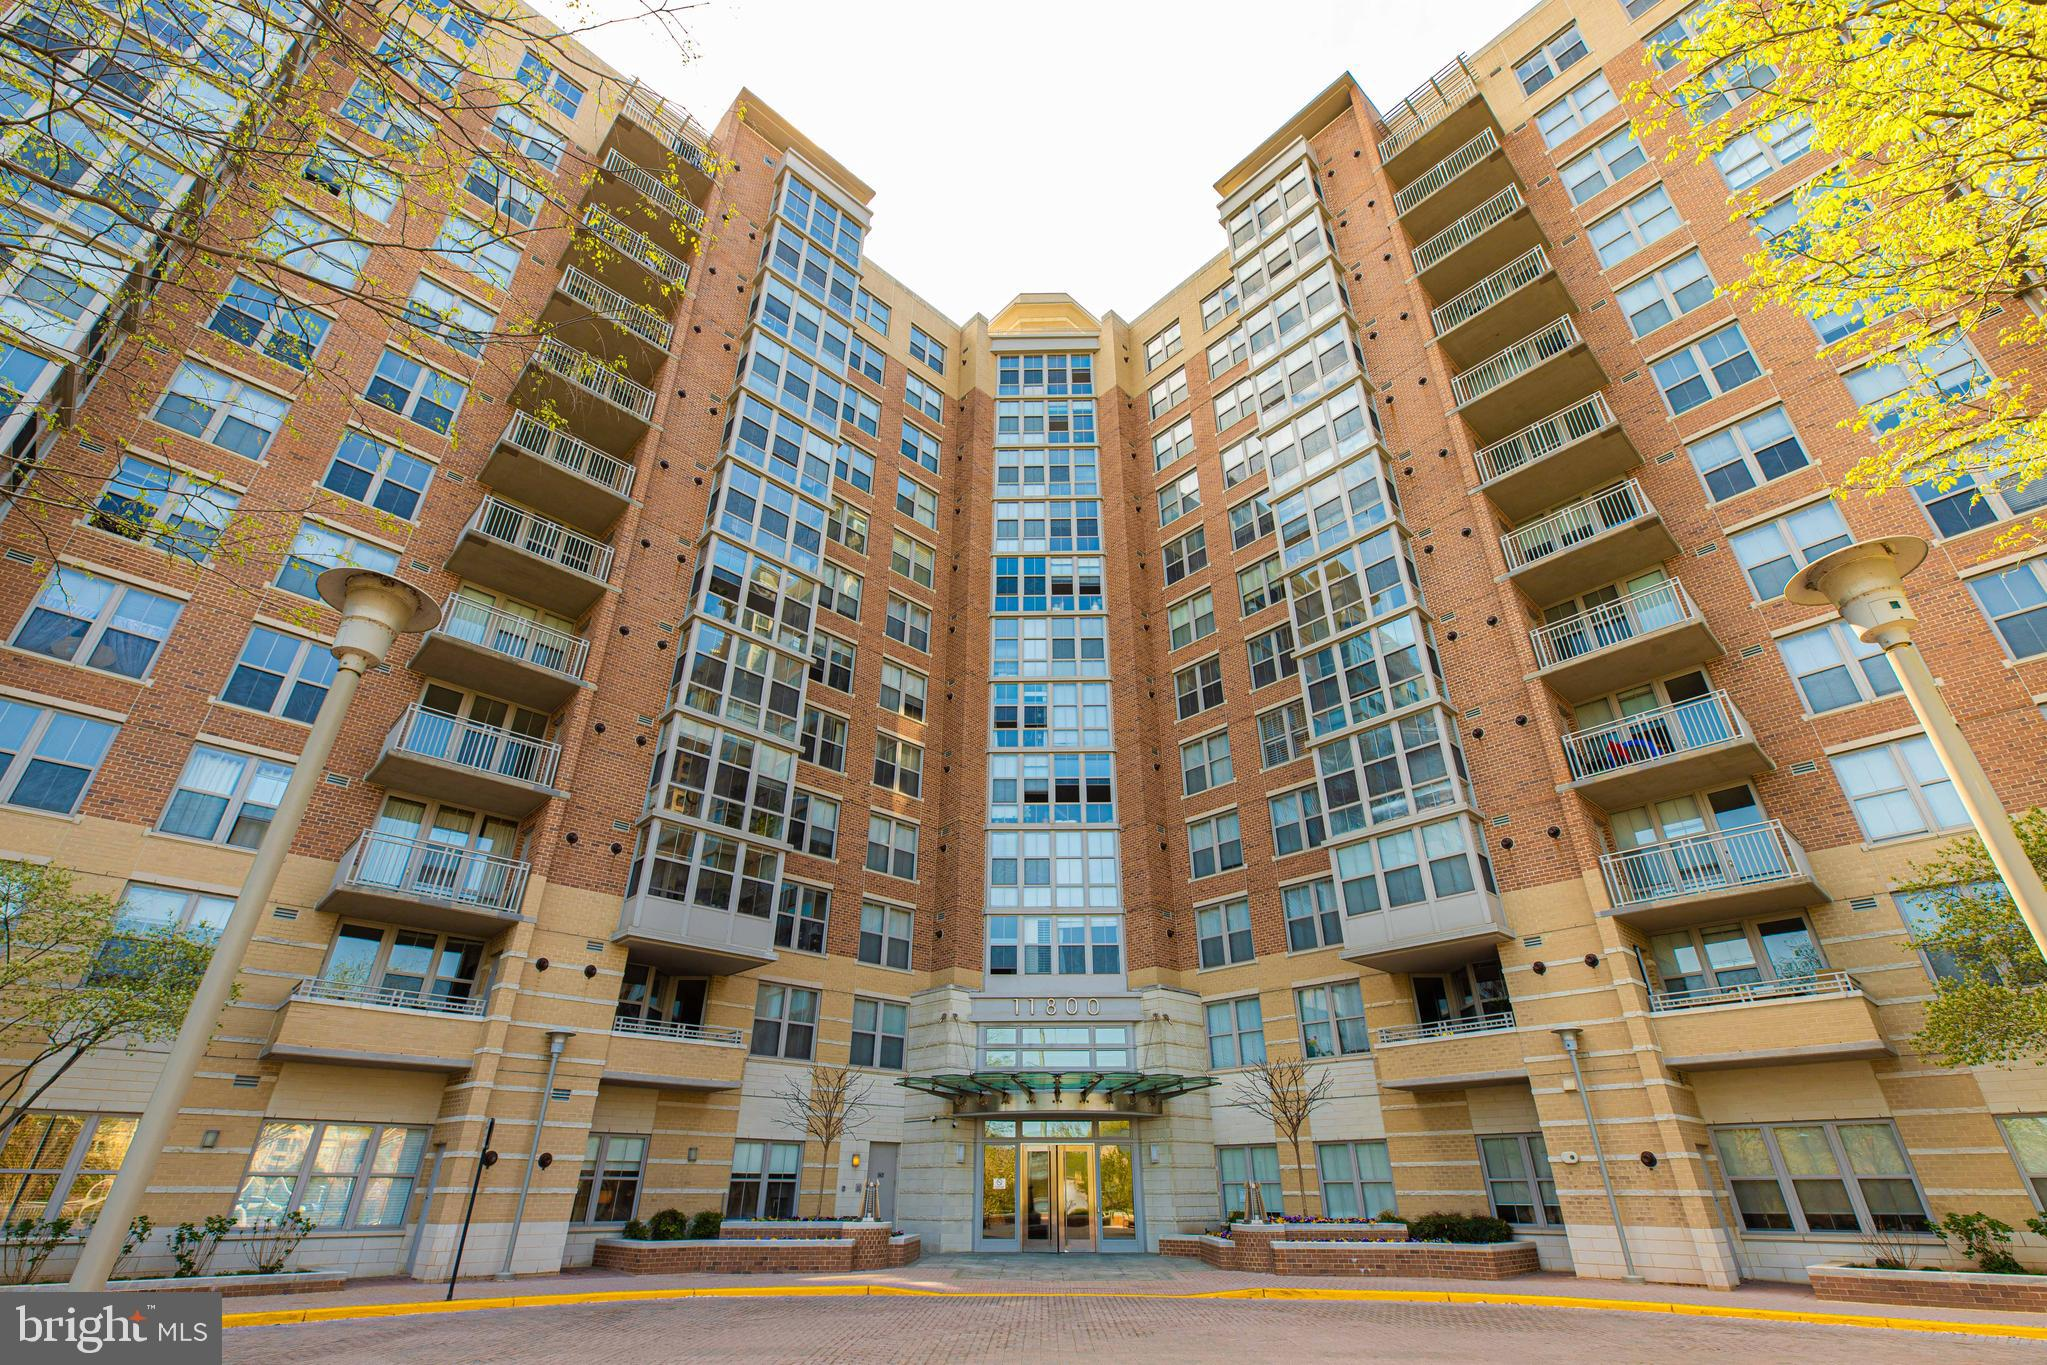 The Carlton House, a high-rise condominium located in Reston Town Center at the intersection of Suns